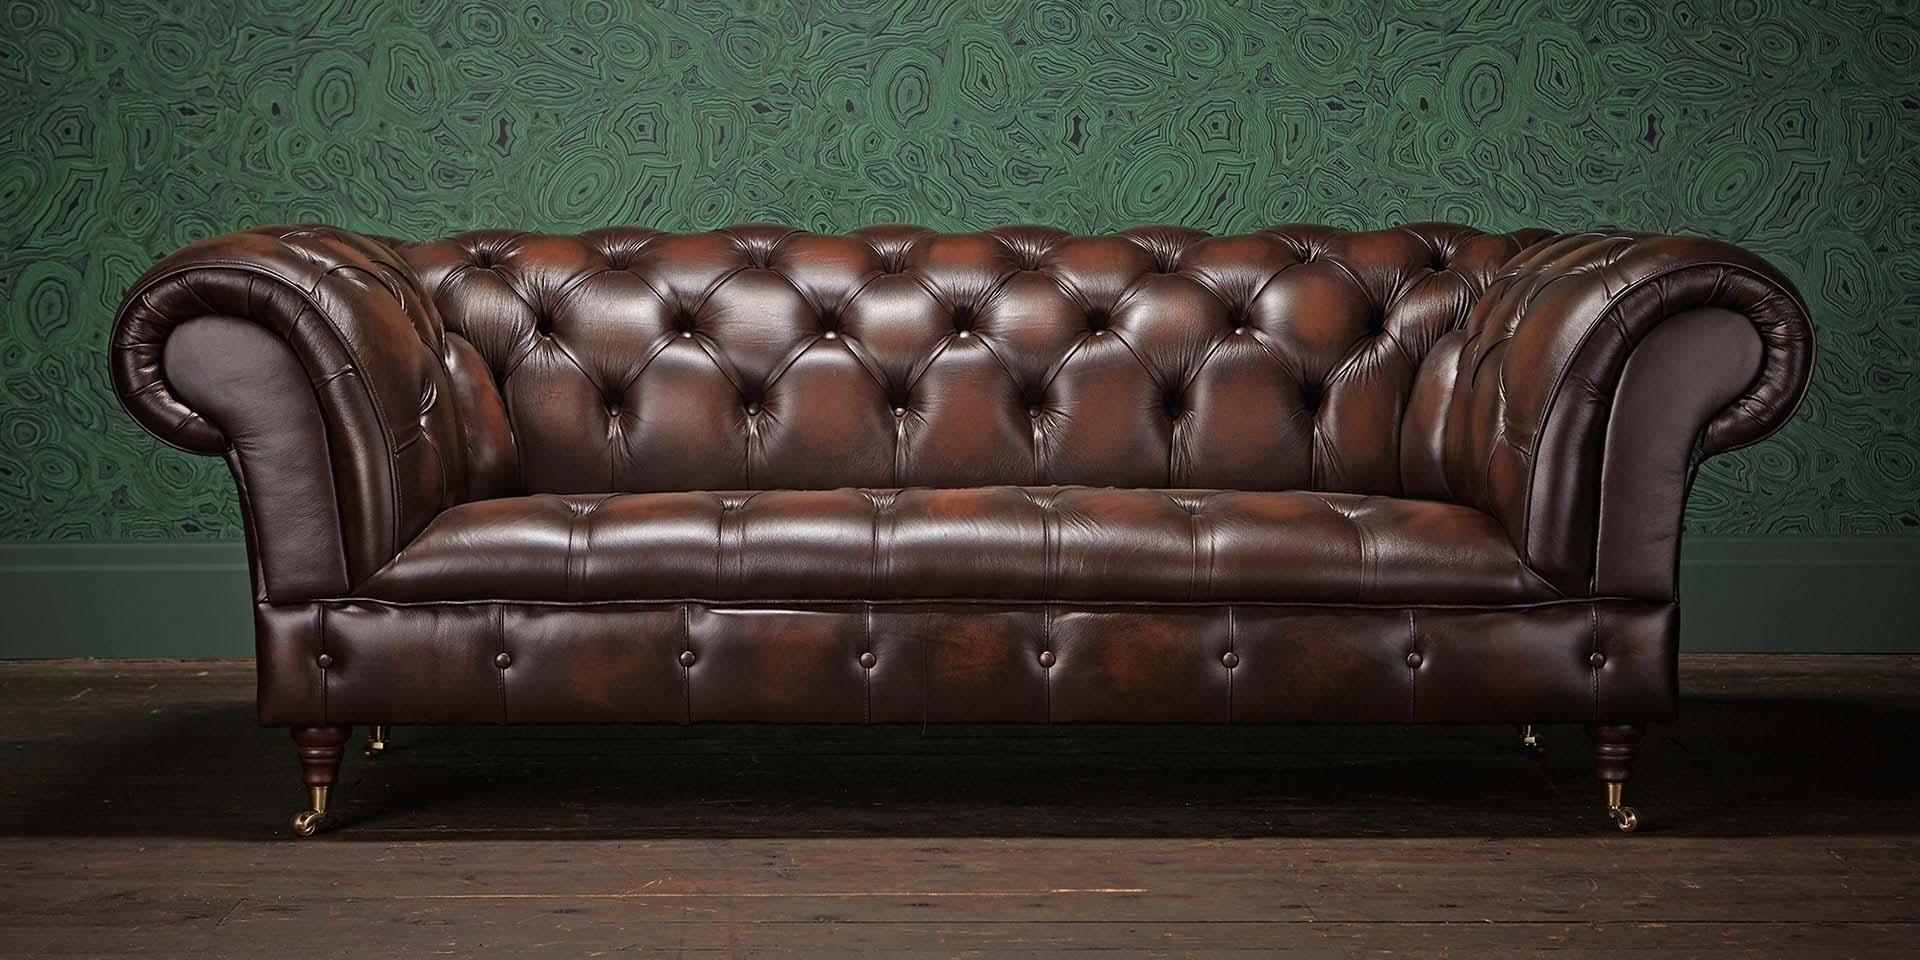 Chesterfields Of England   The Original Chesterfield Company Throughout Chesterfield Sofa And Chairs (View 4 of 20)